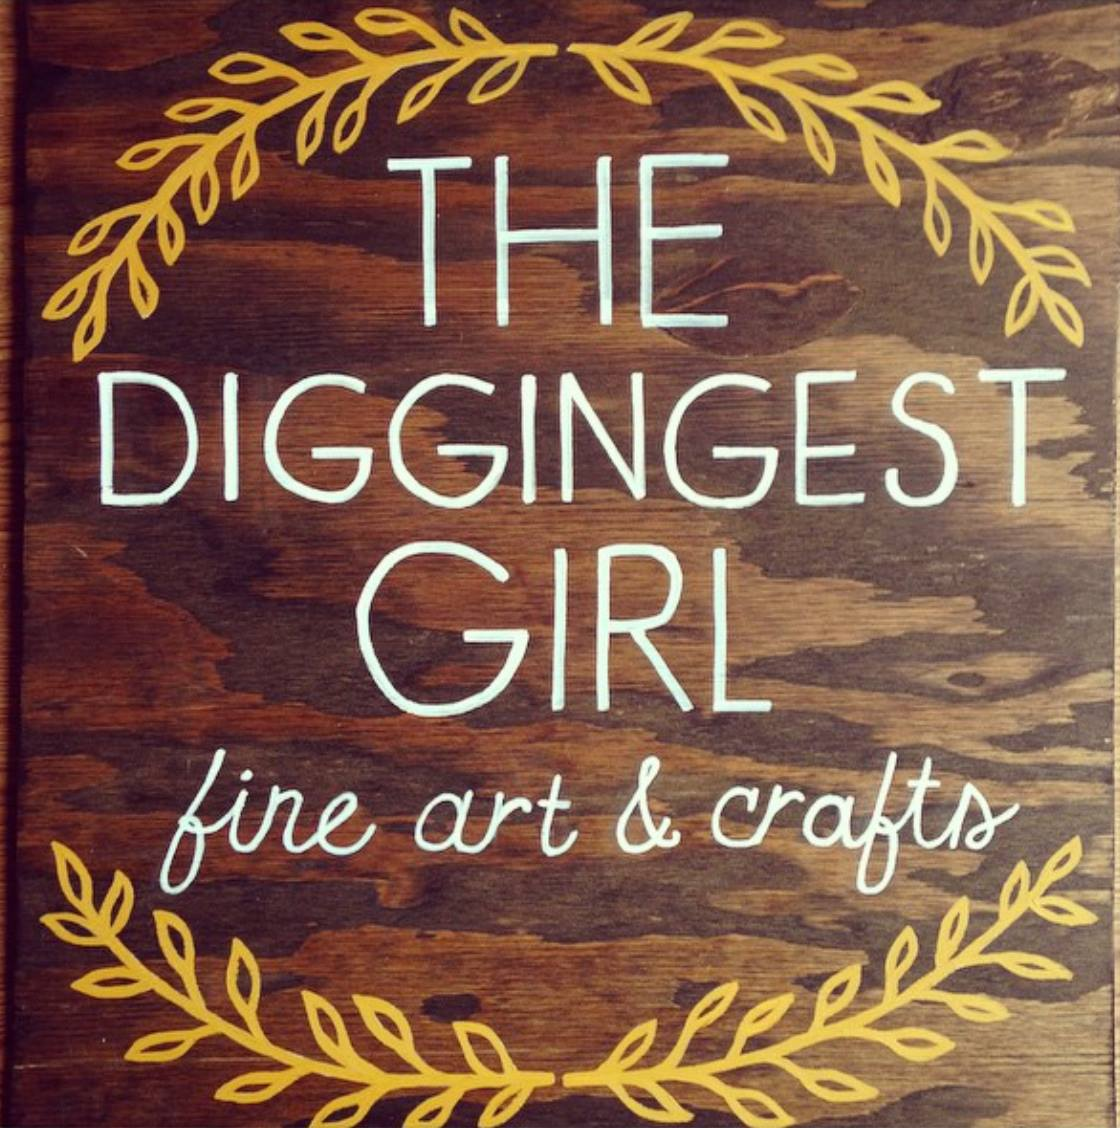 The Diggingest Girl